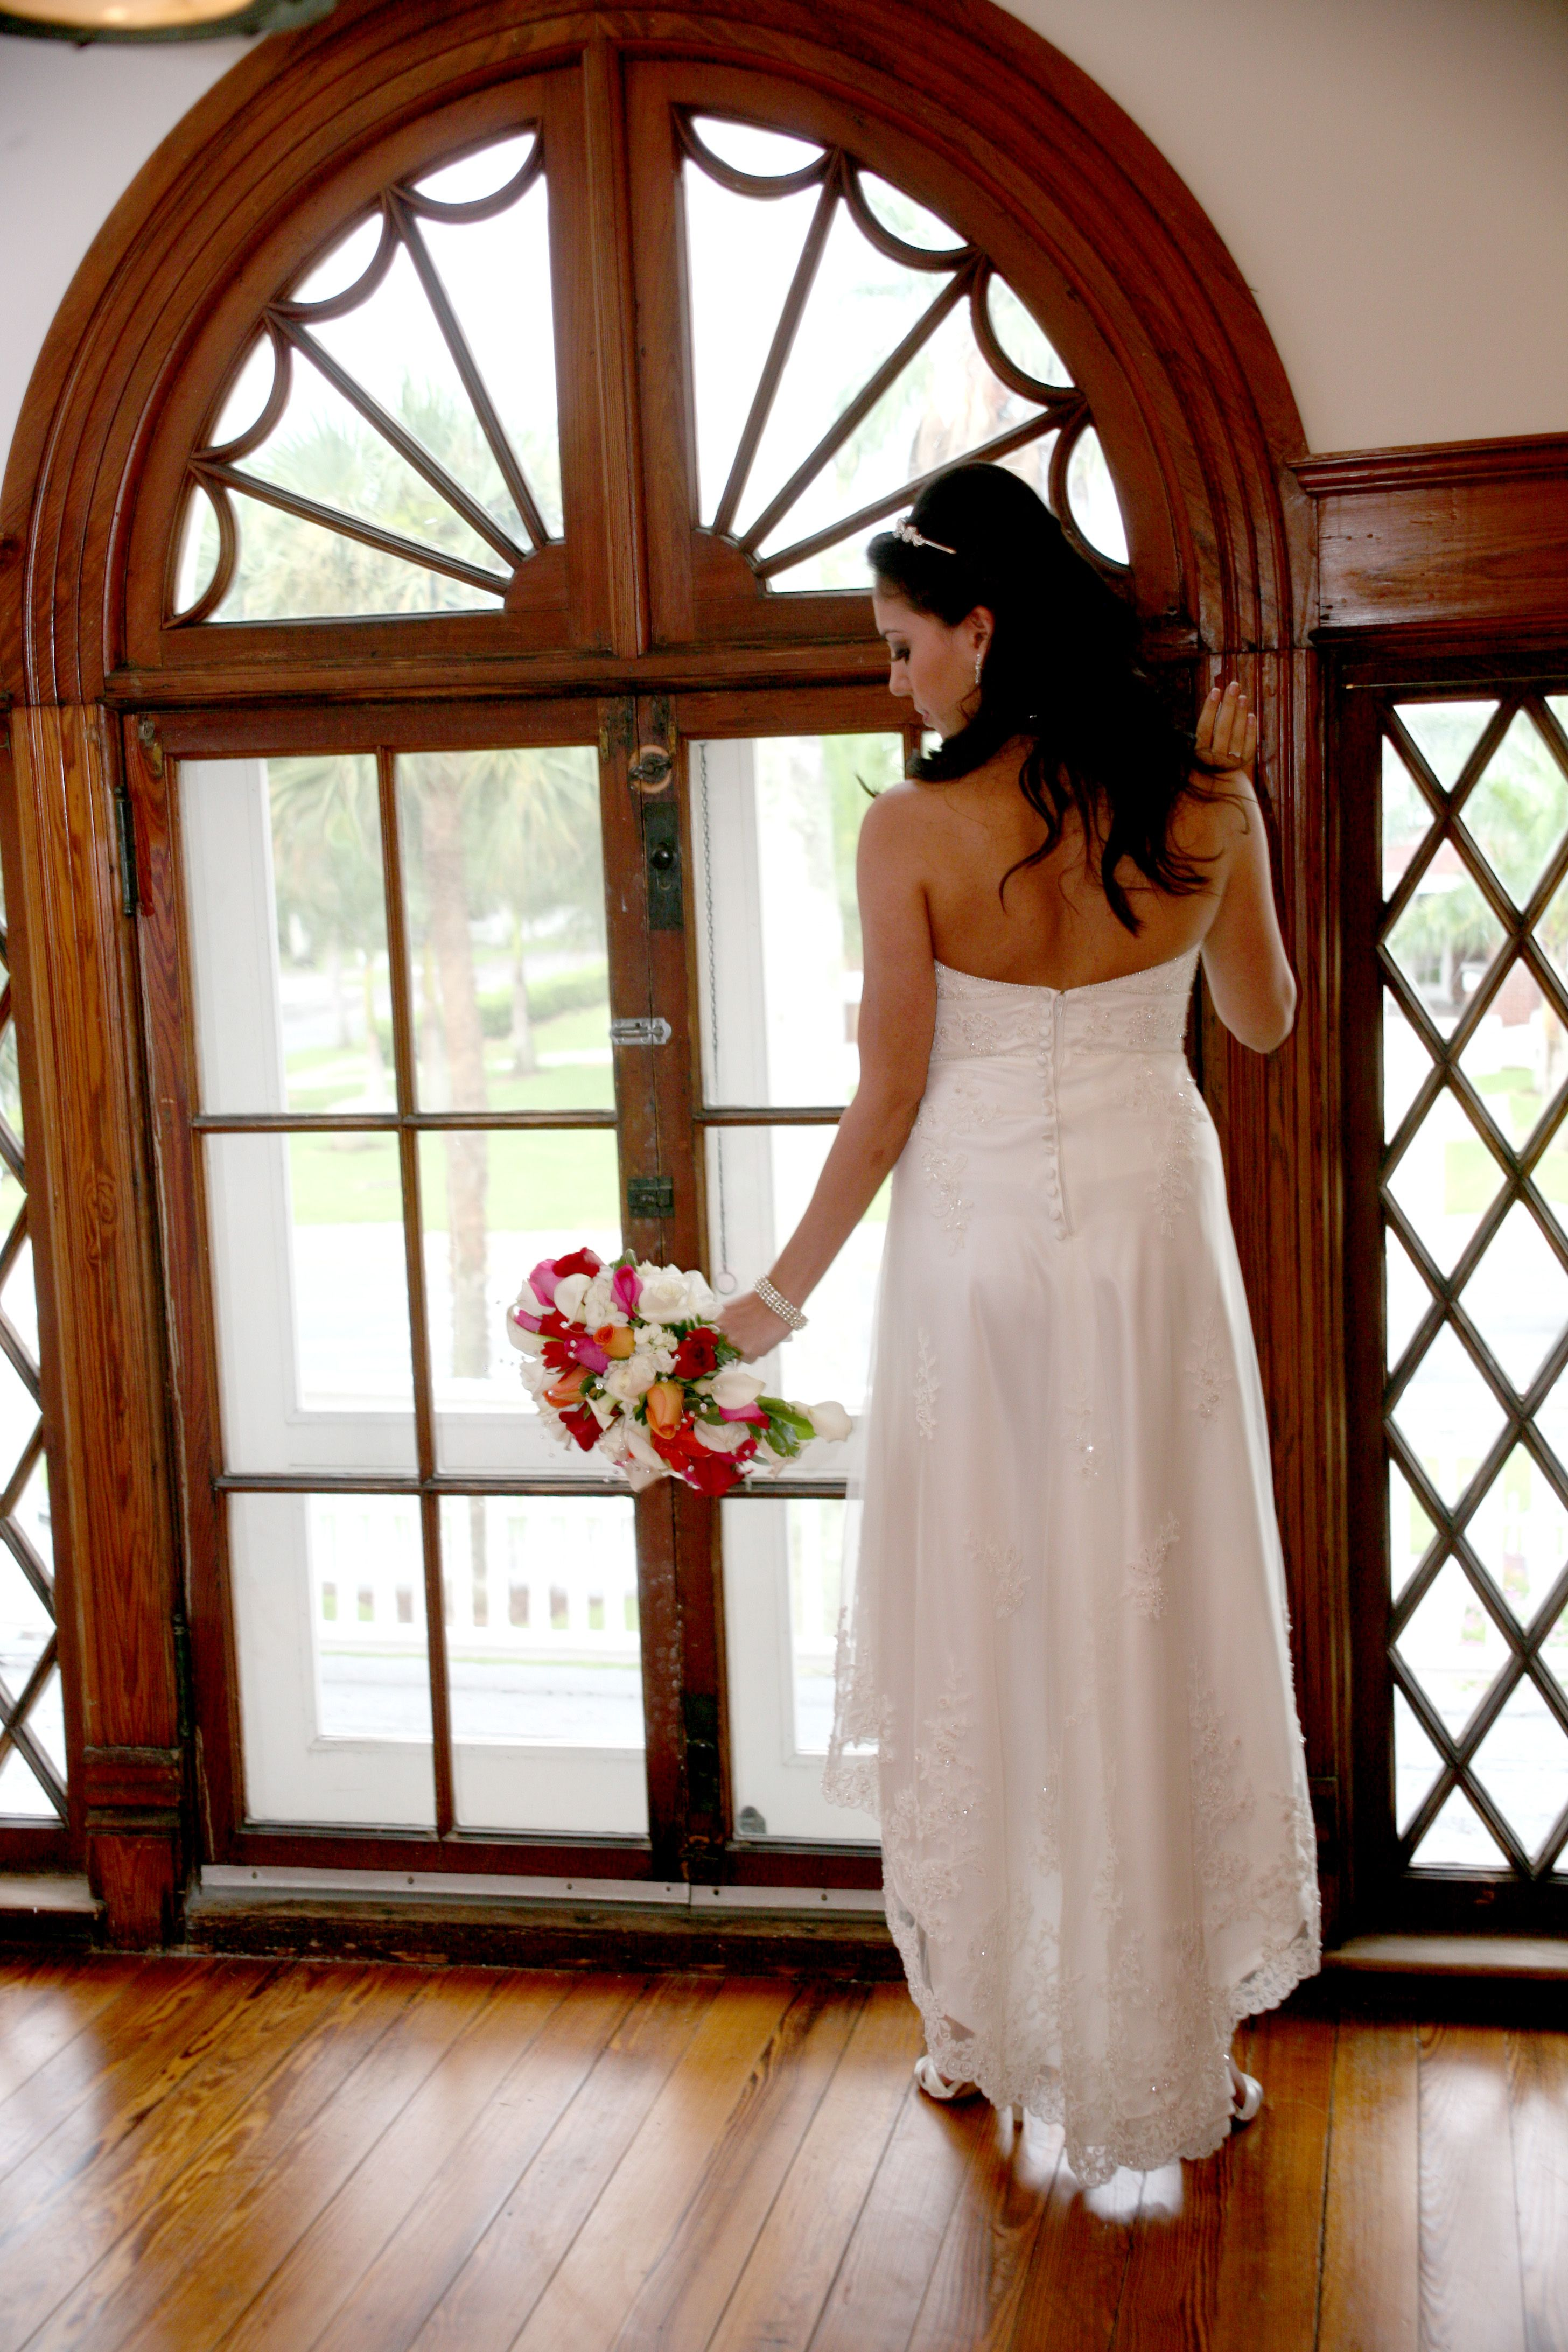 Historic Wedding Venue, The Burroughs Home in Fort Myers